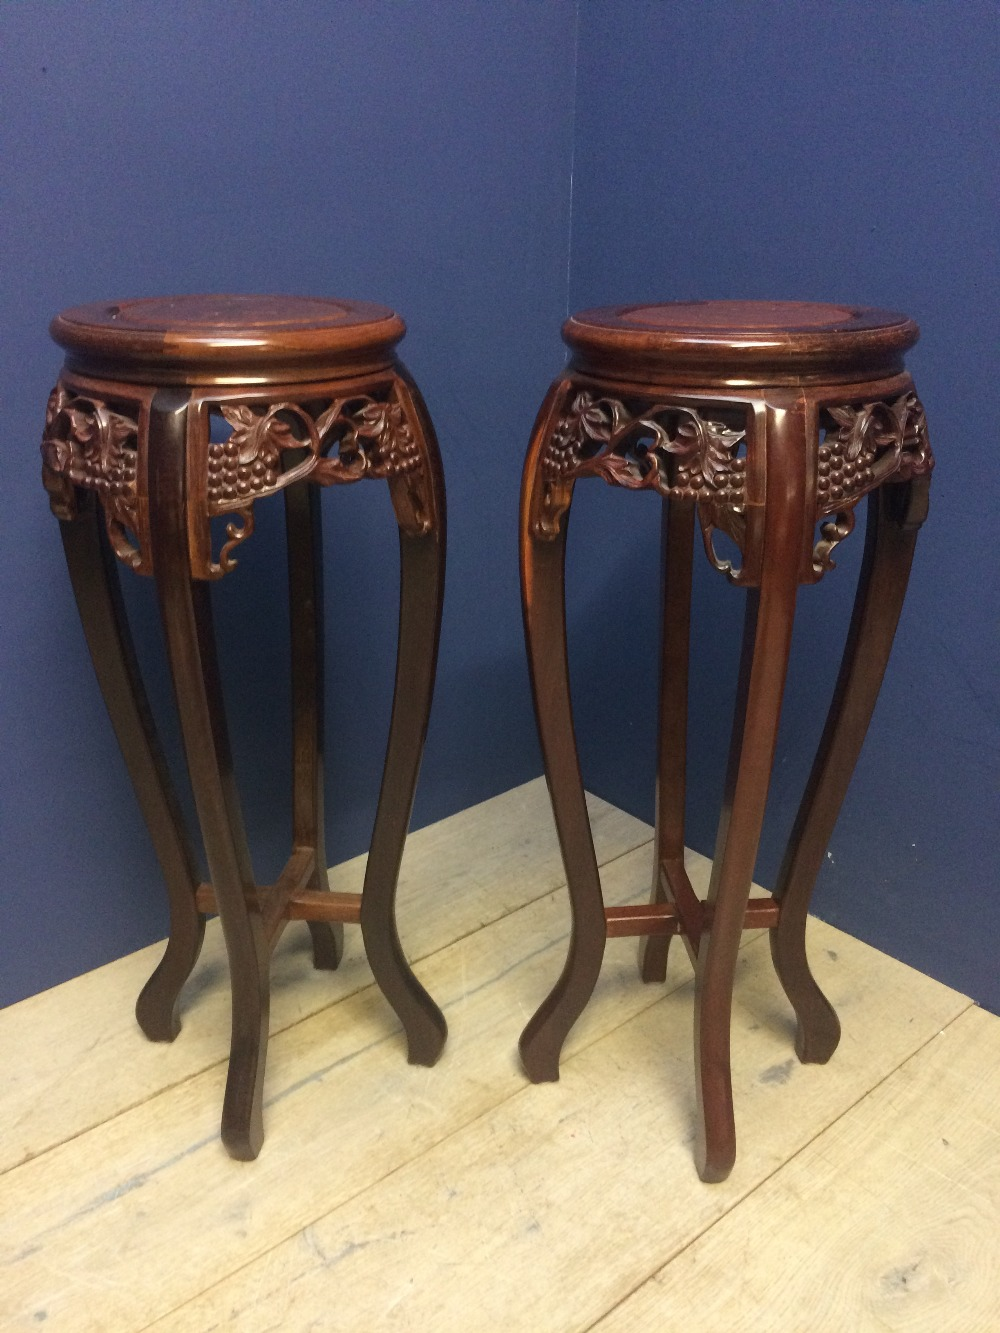 Lot 100 - Pair of ornate wooden display stands for vases 82cm H